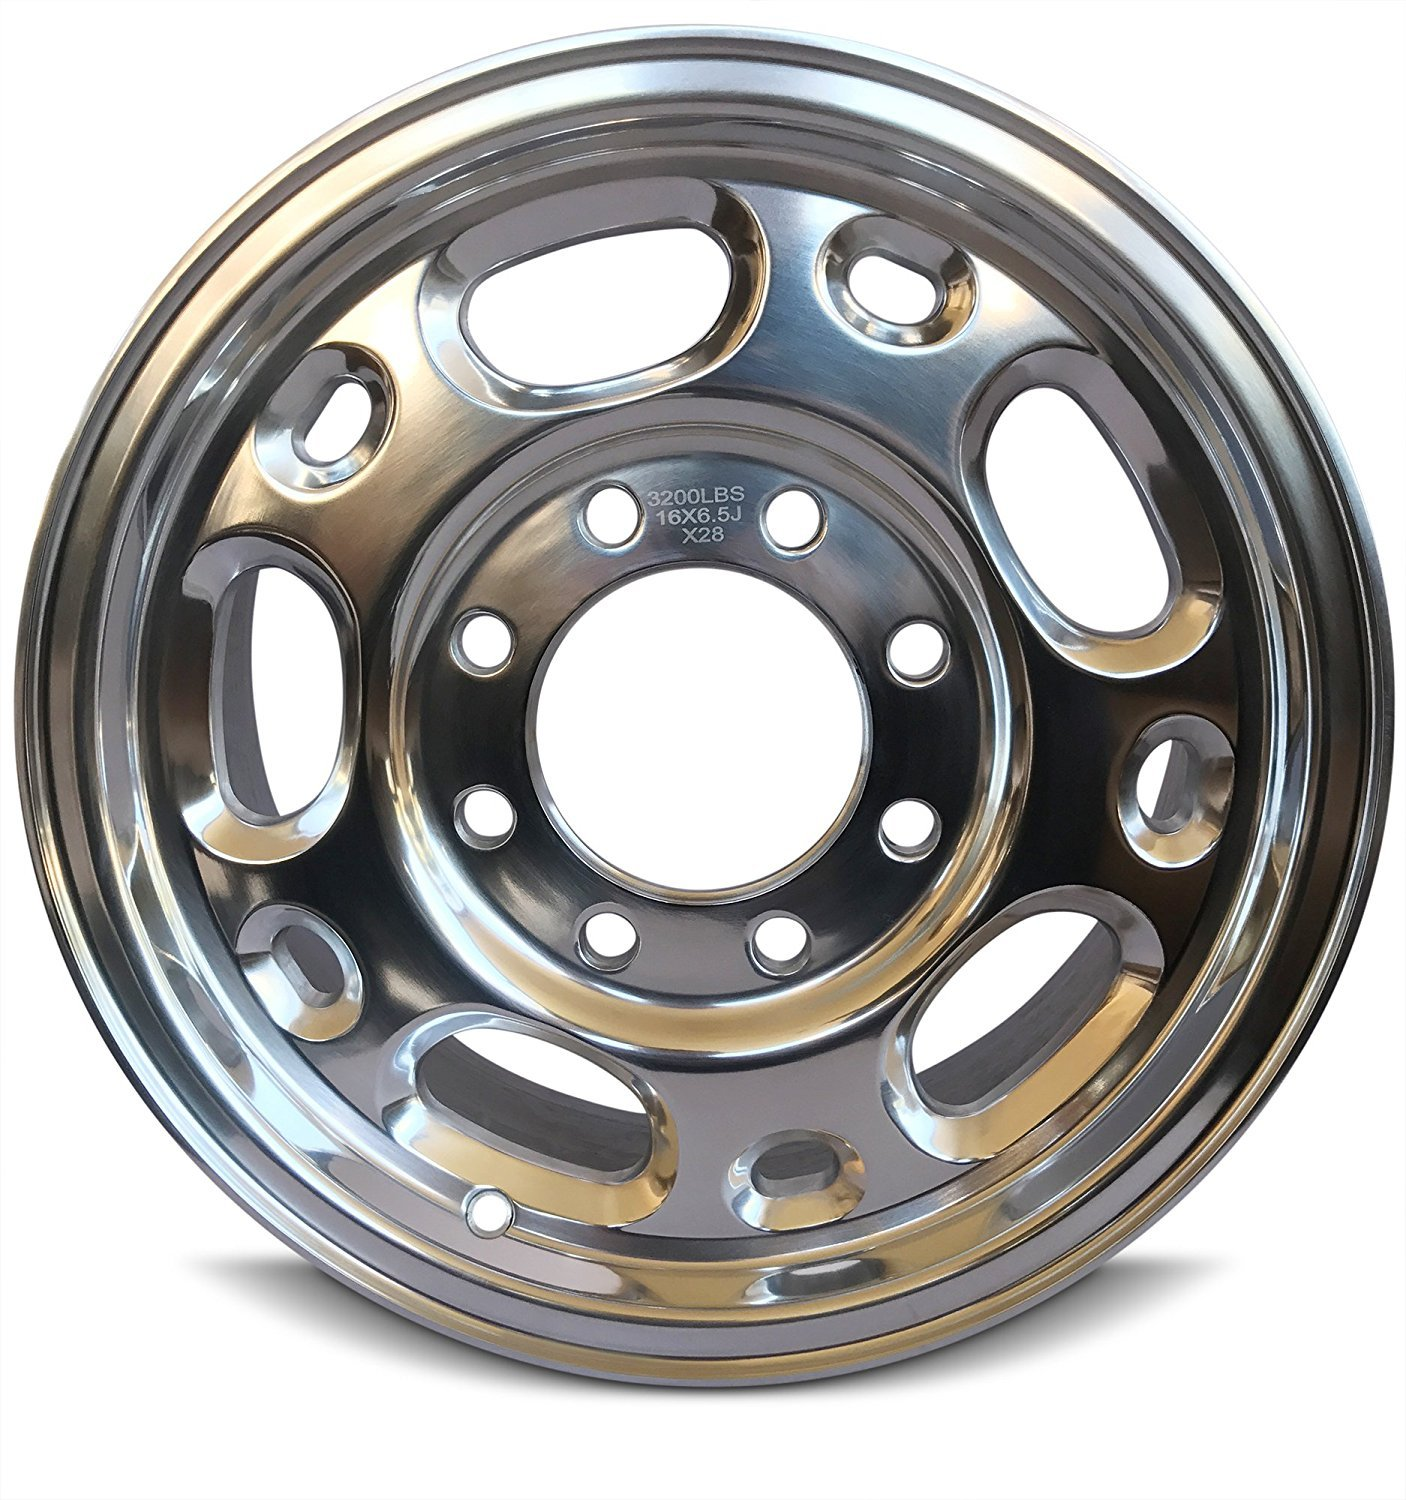 Road Ready Car Wheel For 2002 2006 Chevrolet Avalanche 2500 2001 2007 Chevrolet Silverado 1500 1999 2010 Chevrolet Silverado 2500 Chevrolet Suburban